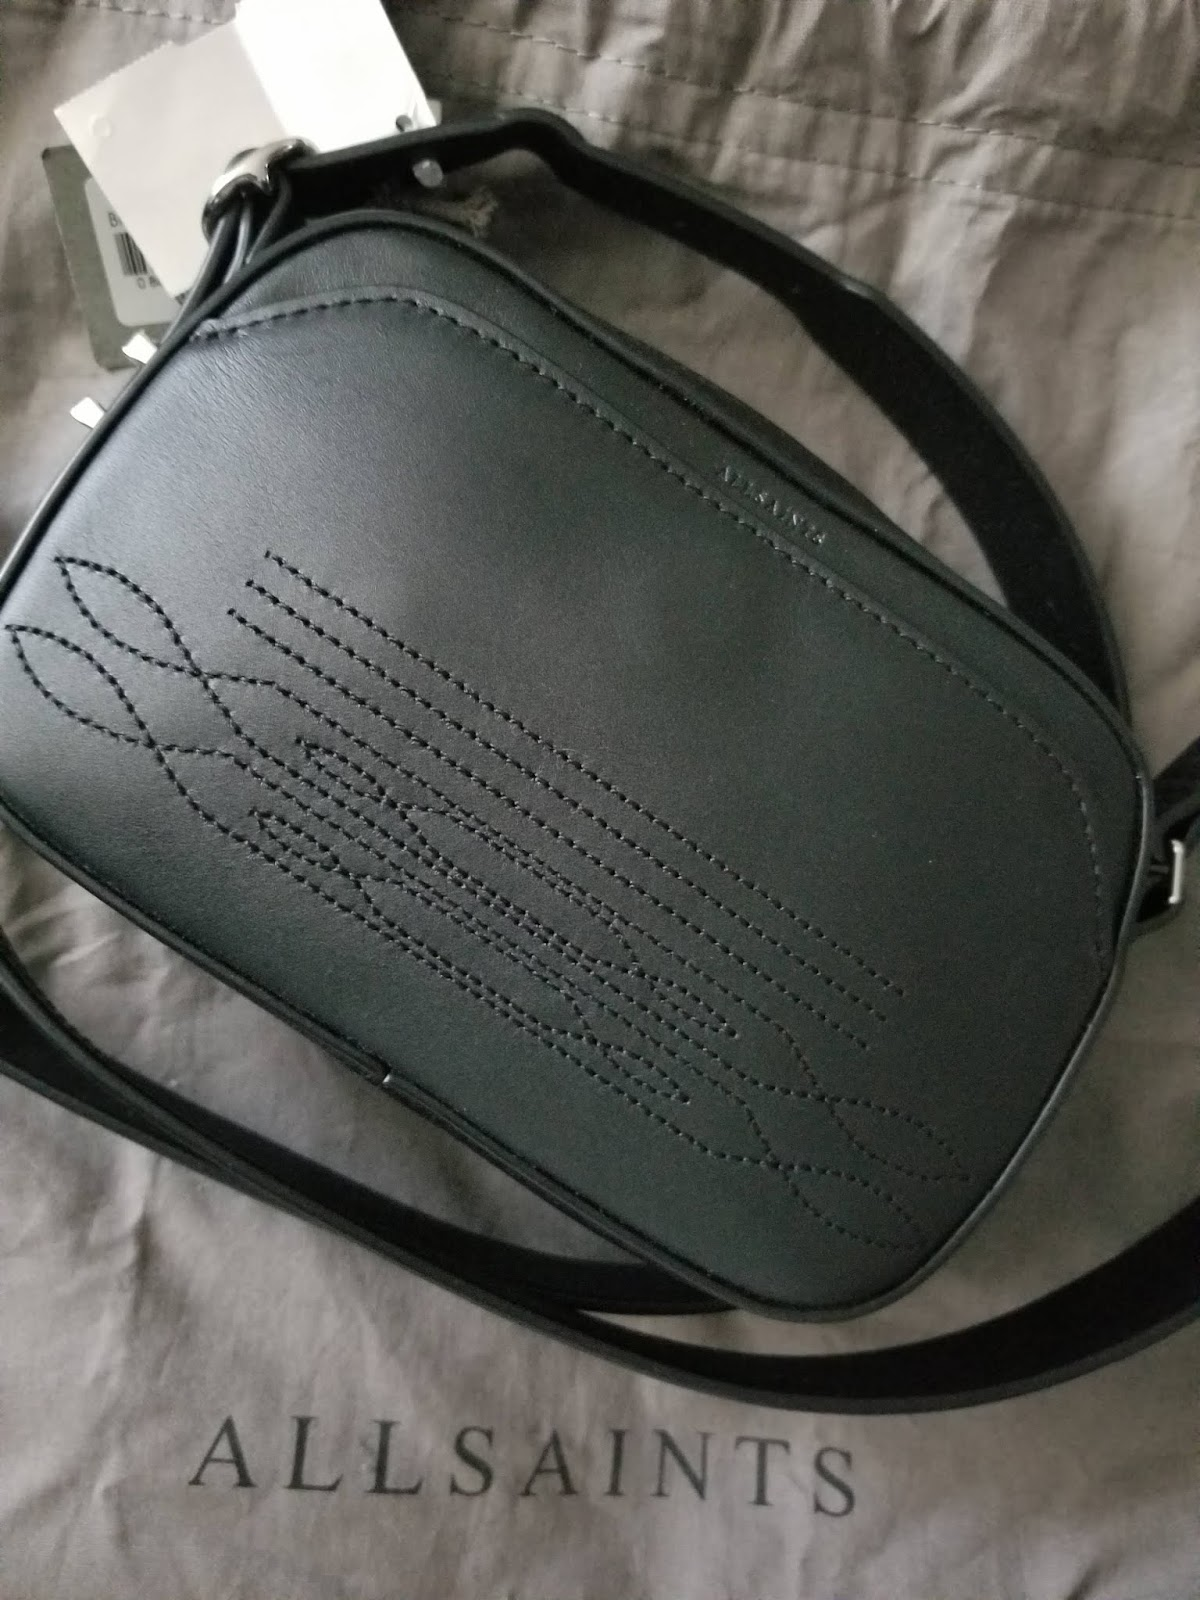 c204f788c08 It still had the tags on it! You just can t beat that! The quality of the  bag is amazing and I really love the cowboy-inspired stitching on the strap  and on ...